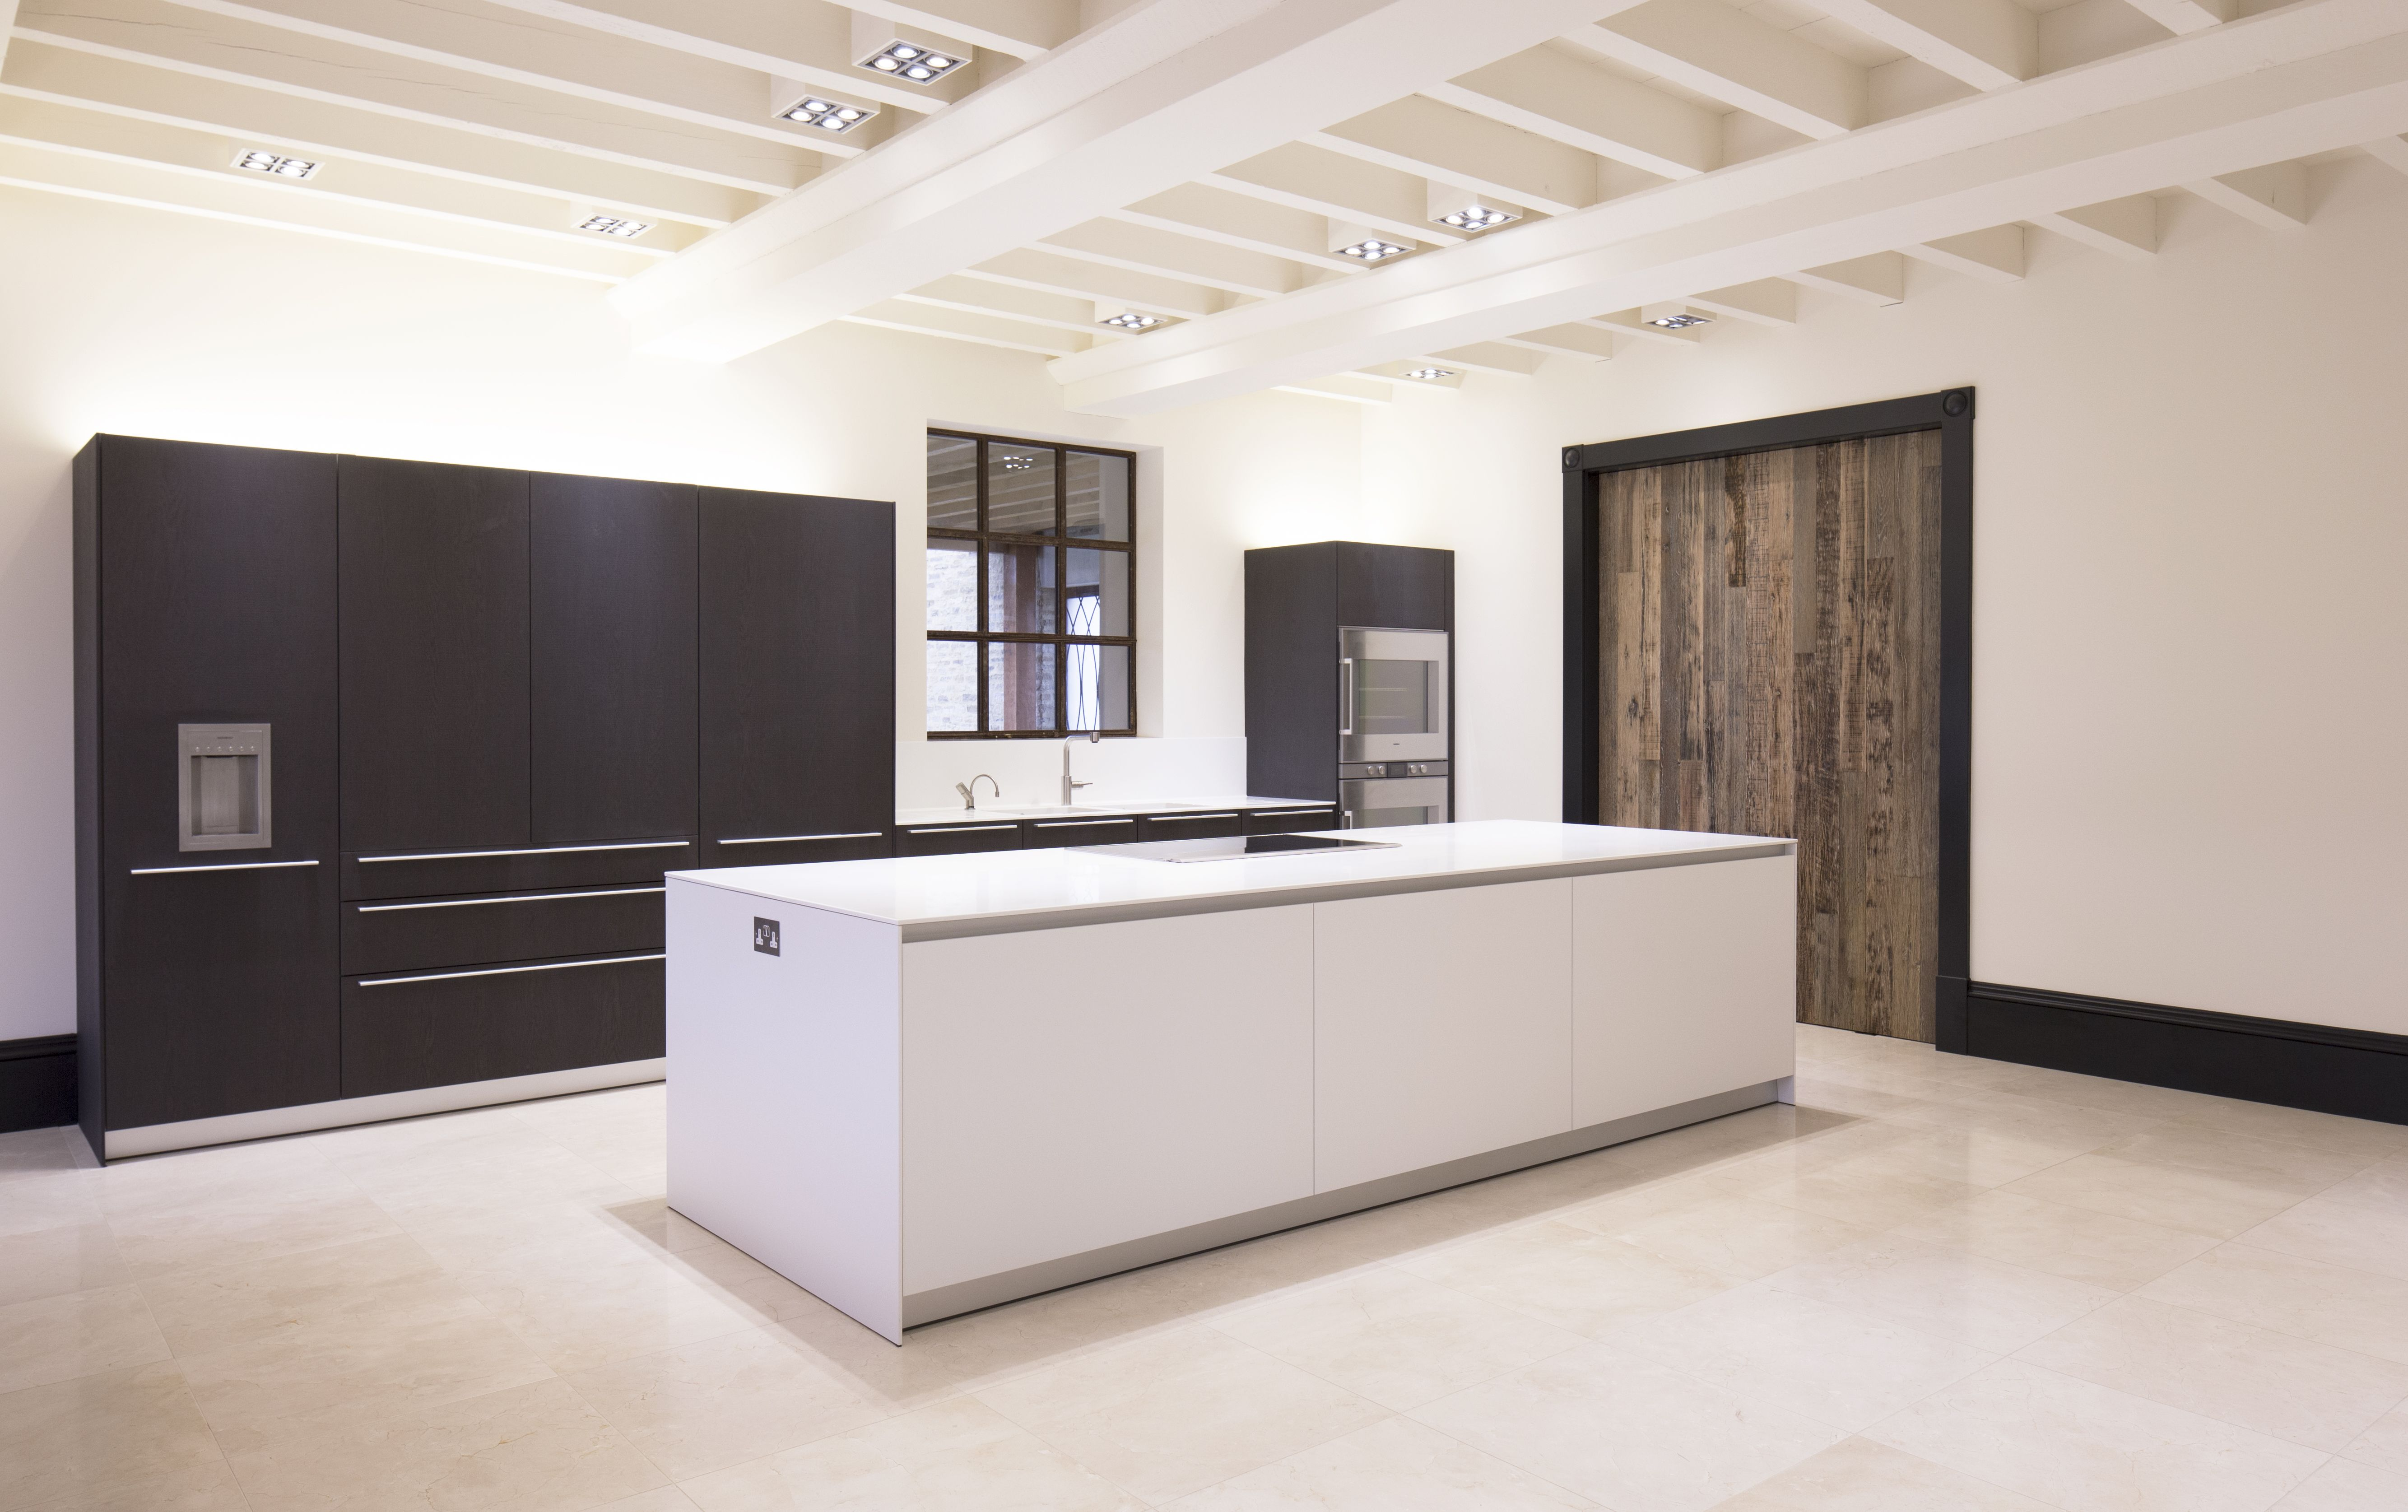 Bulthaup B3 The Large Bulthaup B3 Kitchen Is Created Using Alpine White Laminate For The Island And Dark Stained Oak Venee… | Georgian Style Homes, White Laminate, Luxury Homes